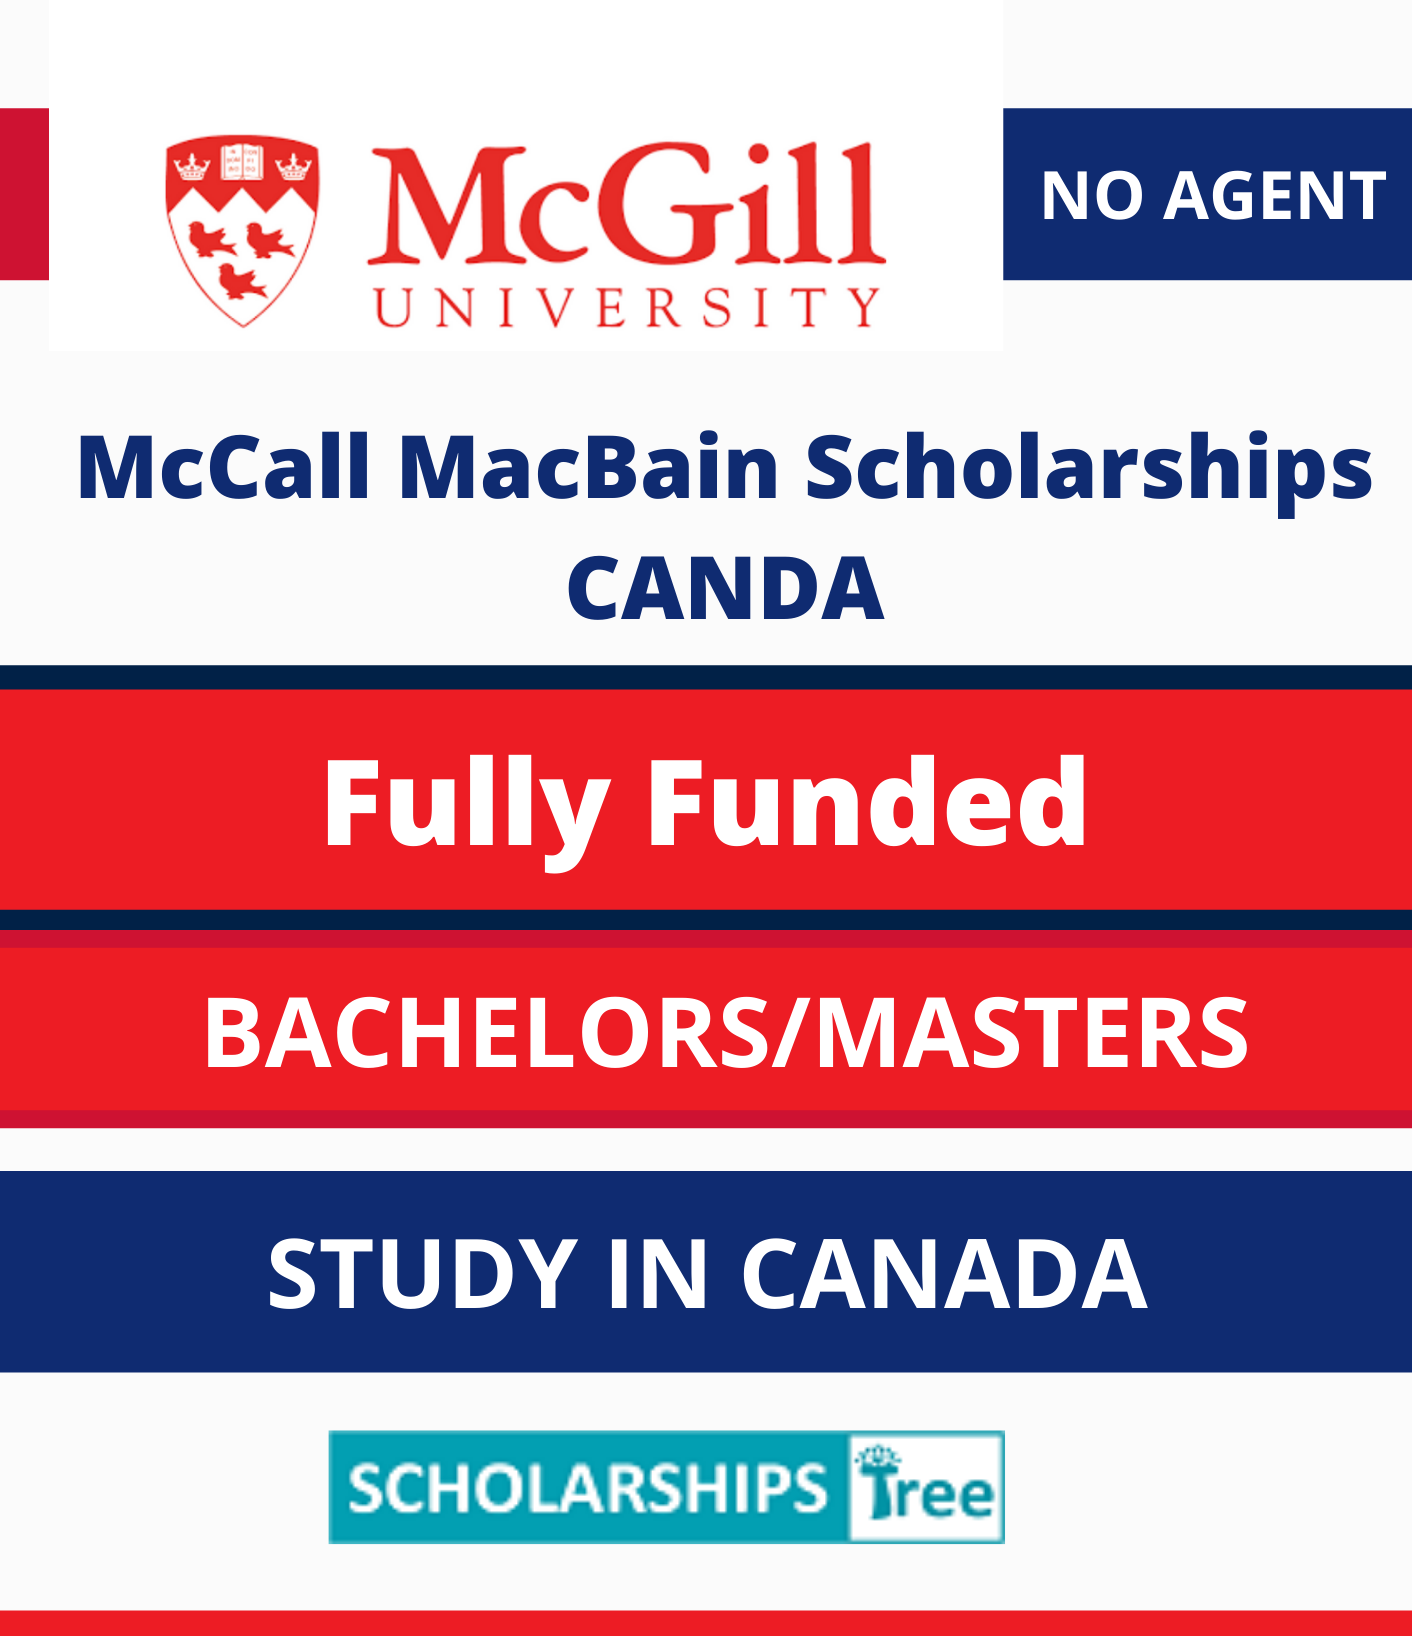 McCall MacBain Scholarships in Canada - FULLY FUNDED